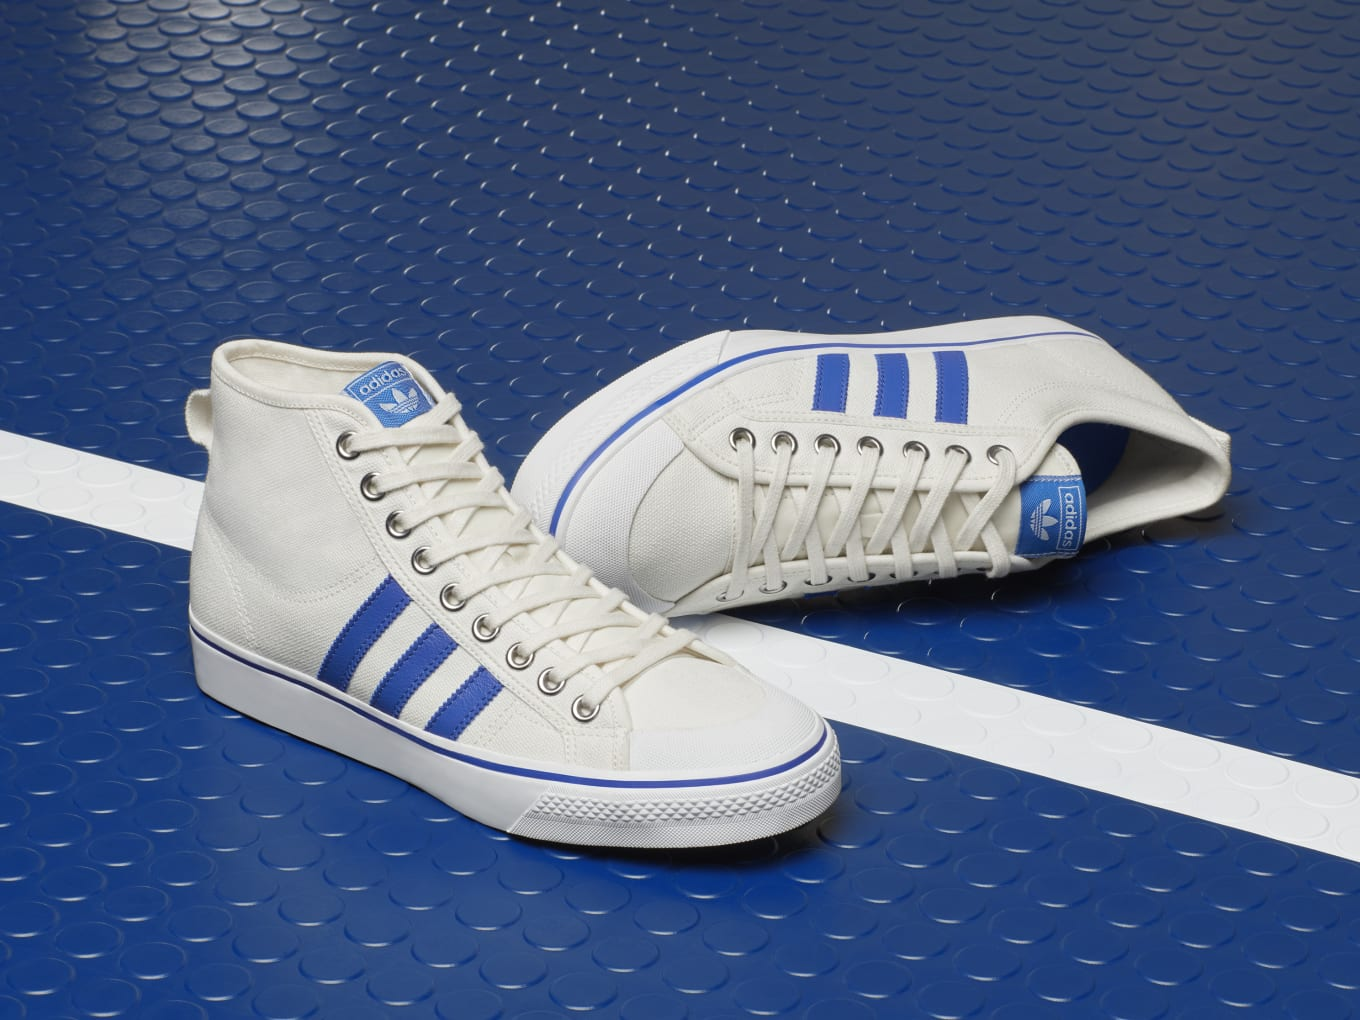 quality 100% authentic dirt cheap Adidas Nizza Hi and Low